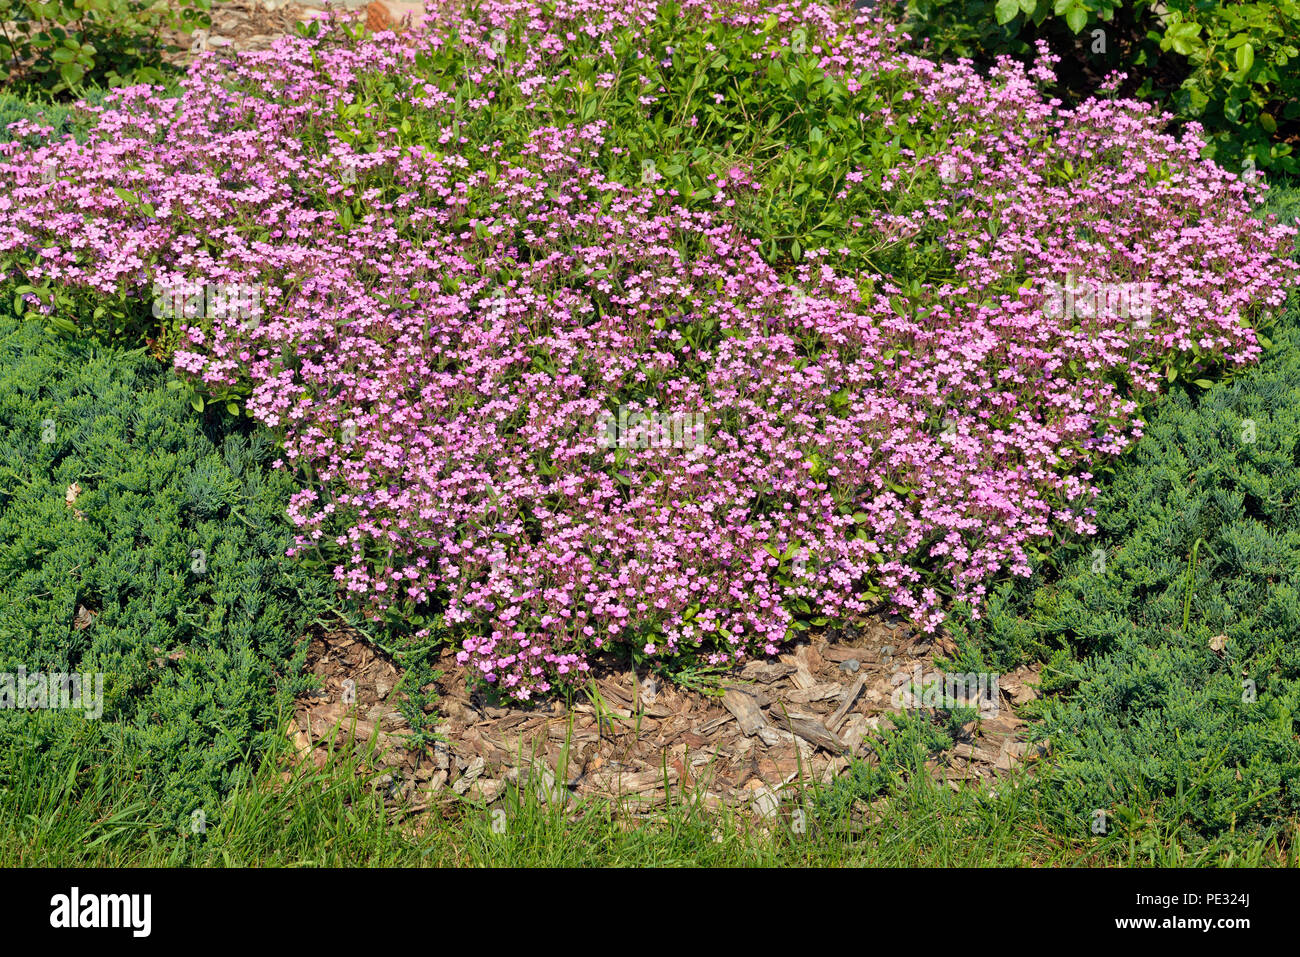 Flowering heather shrub, Greater Sudbury, Ontario, Canada - Stock Image